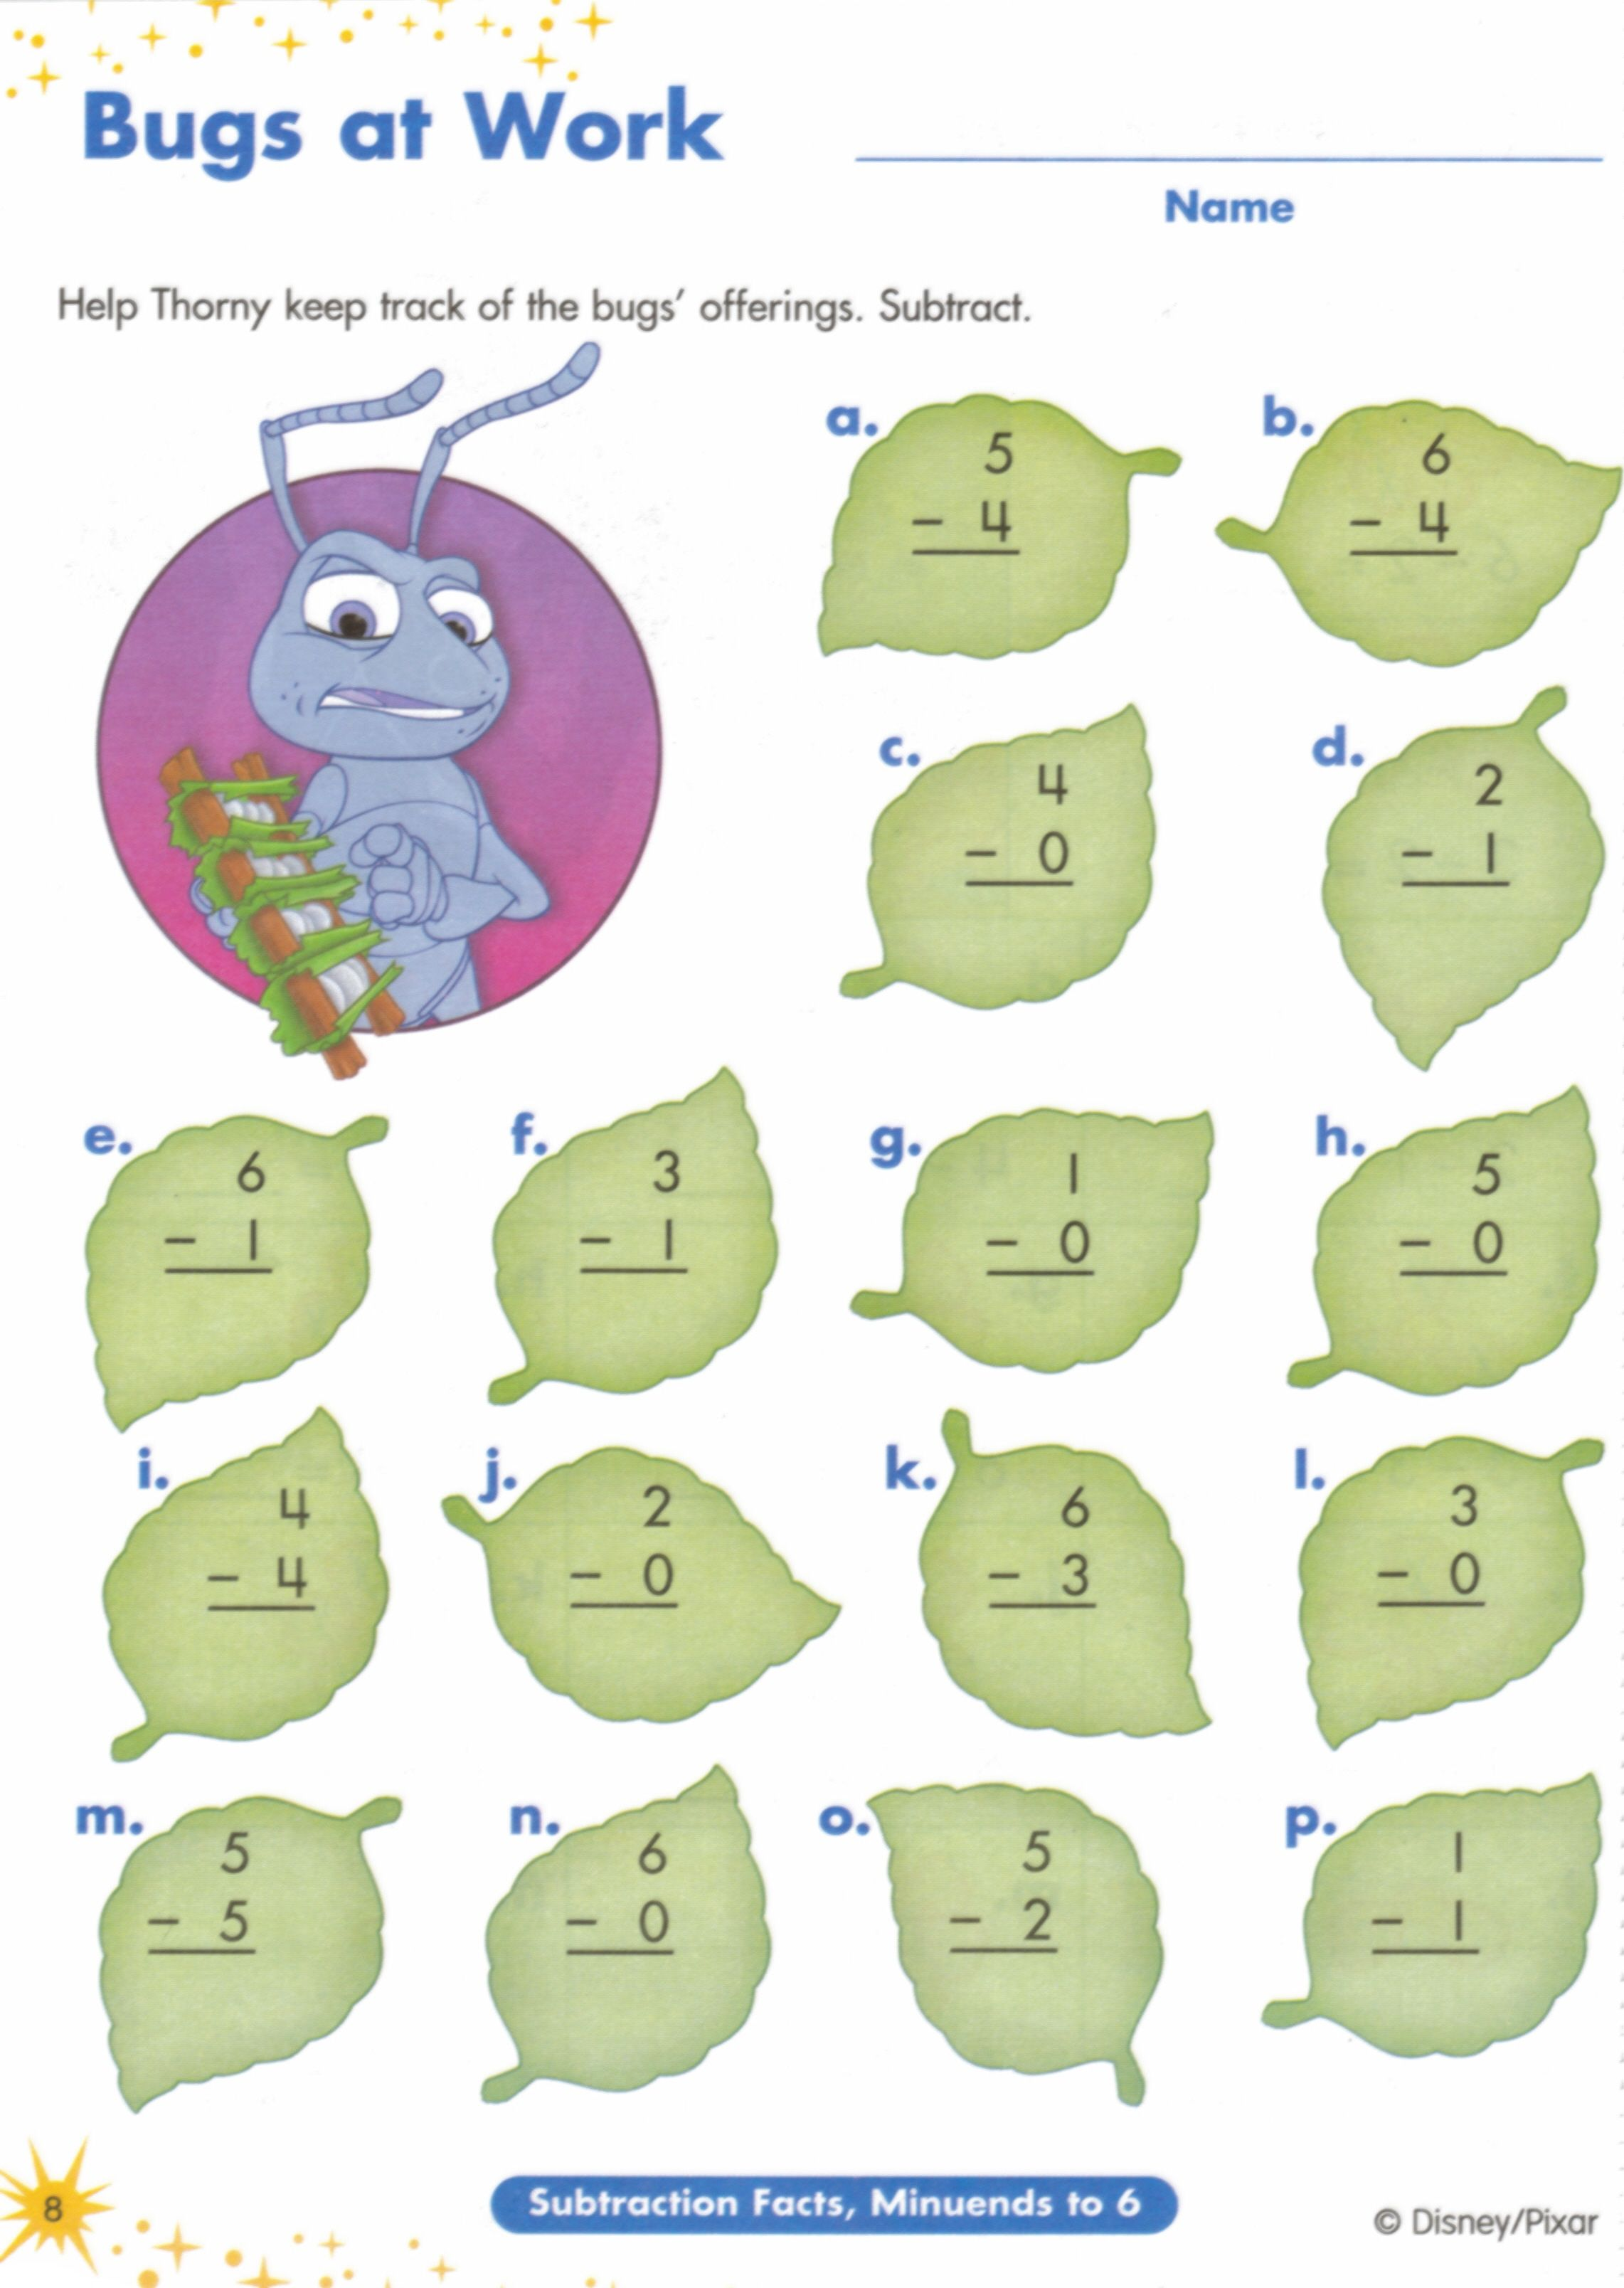 Proatmealus  Winsome  Images About Worksheets On Pinterest  Fun Facts For Kids  With Lovely  Images About Worksheets On Pinterest  Fun Facts For Kids Earth Day Worksheets And Jungles With Archaic Rental Property Tax Deductions Worksheet Also Multiplying Mixed Numbers Worksheets In Addition Metric Measurement Worksheets And Reading A Map Worksheet As Well As Dividing Decimals By Decimals Worksheet Additionally Basic Stoichiometry Worksheet From Pinterestcom With Proatmealus  Lovely  Images About Worksheets On Pinterest  Fun Facts For Kids  With Archaic  Images About Worksheets On Pinterest  Fun Facts For Kids Earth Day Worksheets And Jungles And Winsome Rental Property Tax Deductions Worksheet Also Multiplying Mixed Numbers Worksheets In Addition Metric Measurement Worksheets From Pinterestcom